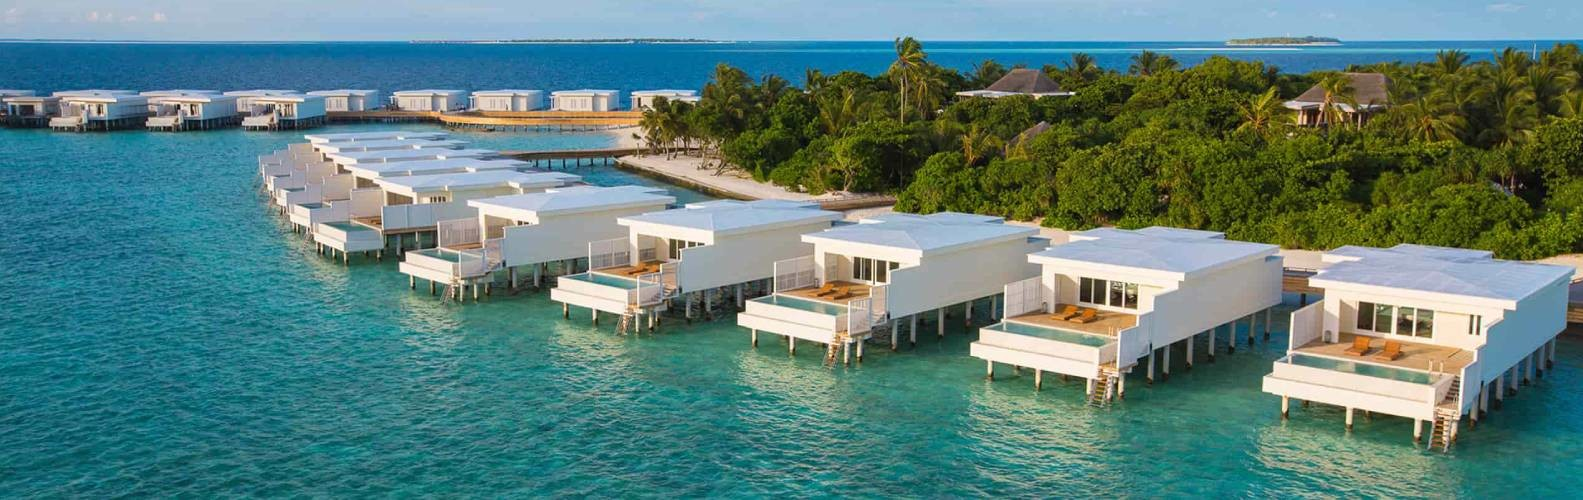 news-main-amilla-maldives-unveils-ultimate-glamping-experience.1583223926.jpg